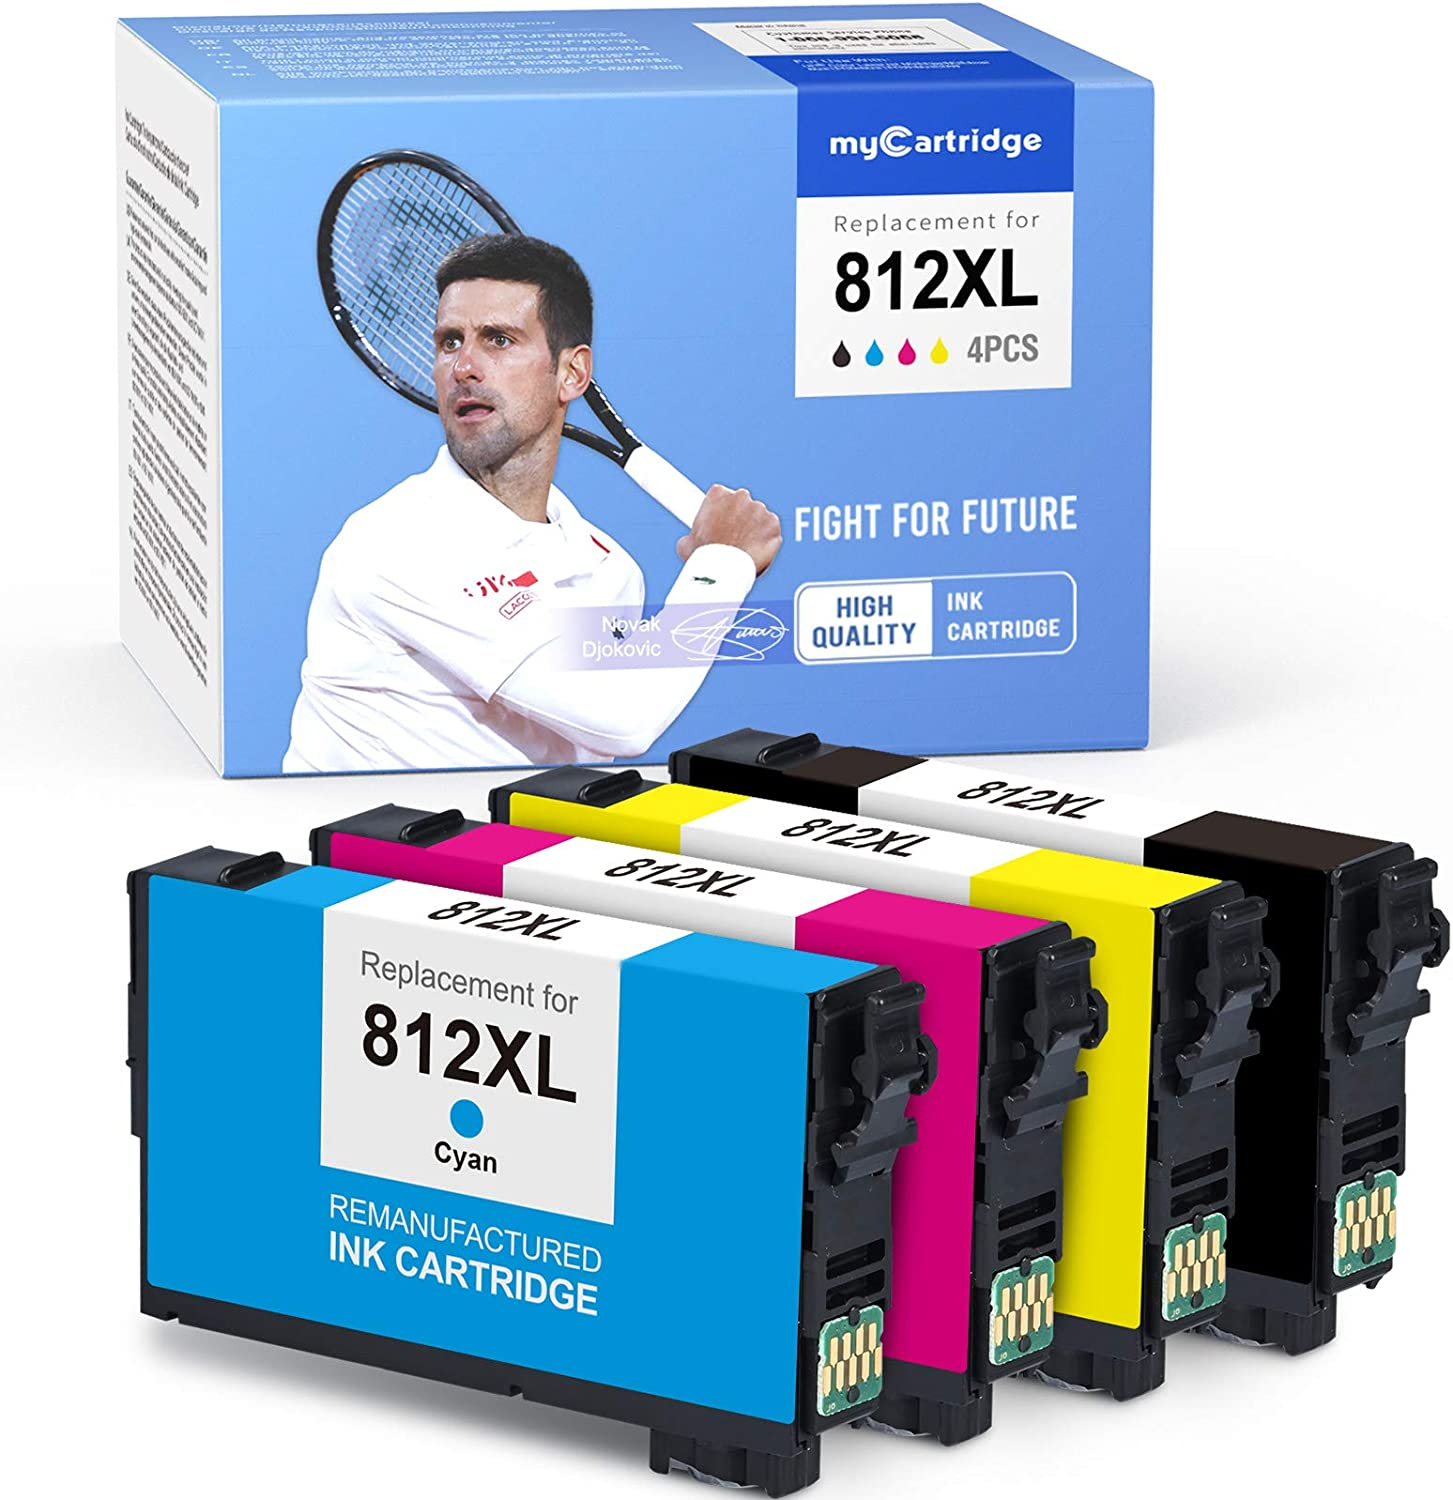 MYCARTRIDGE Remanufactured Ink Cartridge Replacement for Epson 812XL 812 XL T812XL Fit for Workforce Pro WF-7840 WF-7820 EC-C7000 (Black, Cyan, Yellow, Magenta, 4-Pack)